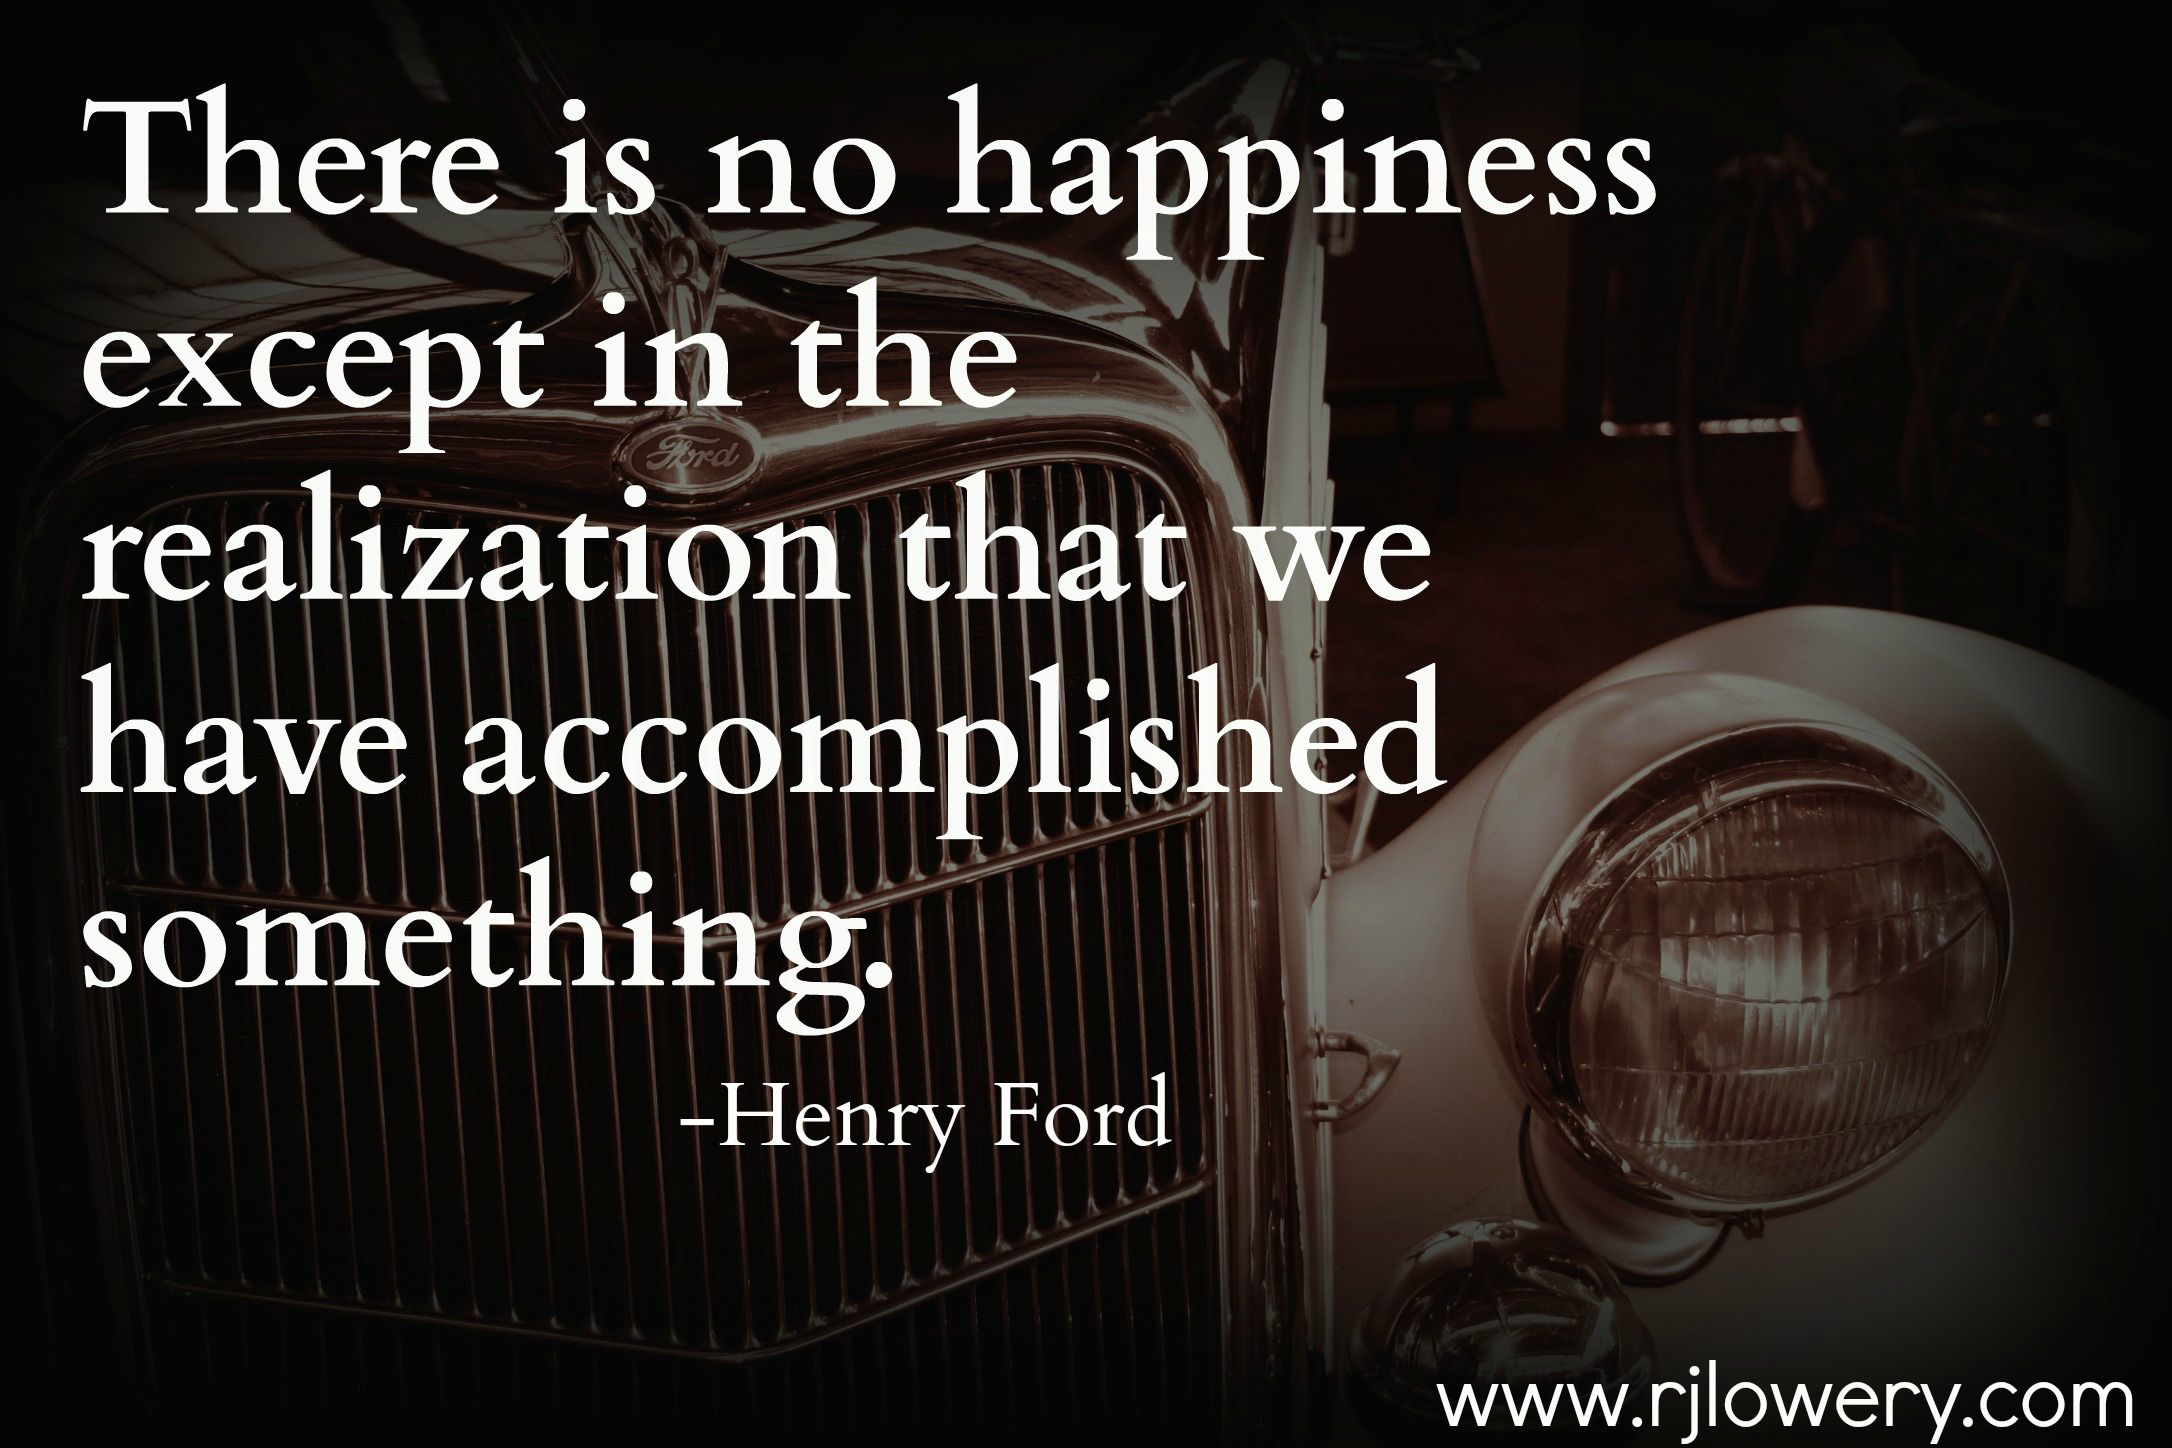 Ford Quotes Brilliant Great Henry Ford Quote  Quotes I Live Pinterest  Henry Ford . 2017